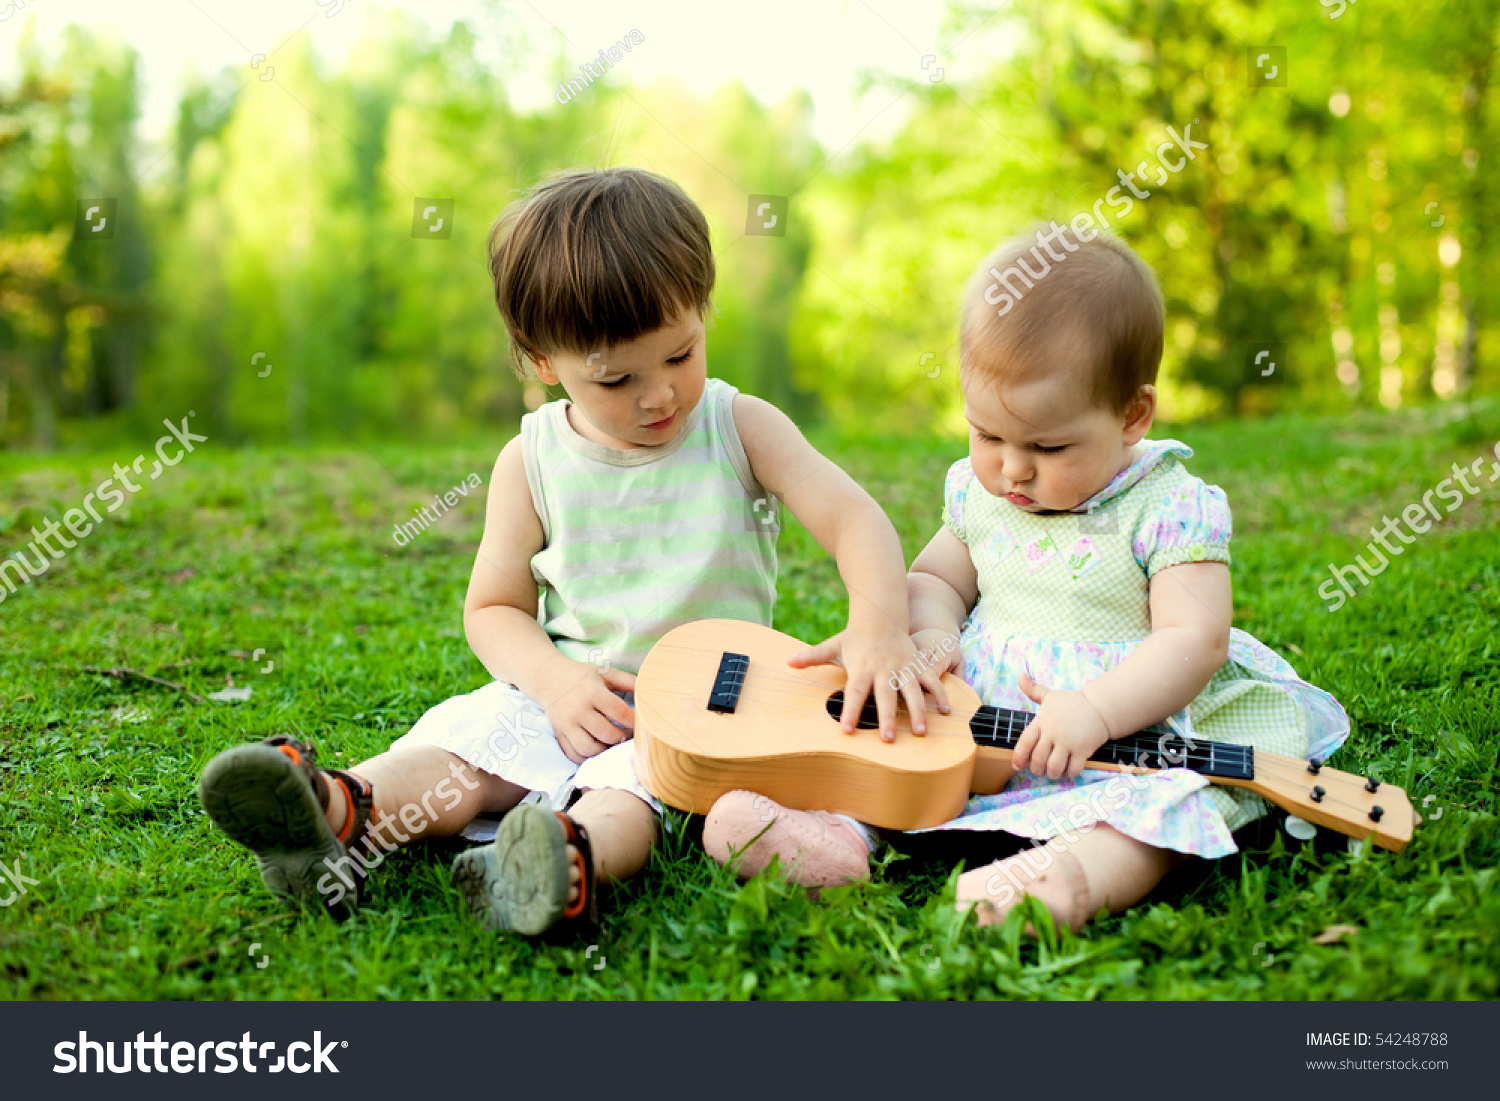 two cute children playing guitar together stock photo (edit now